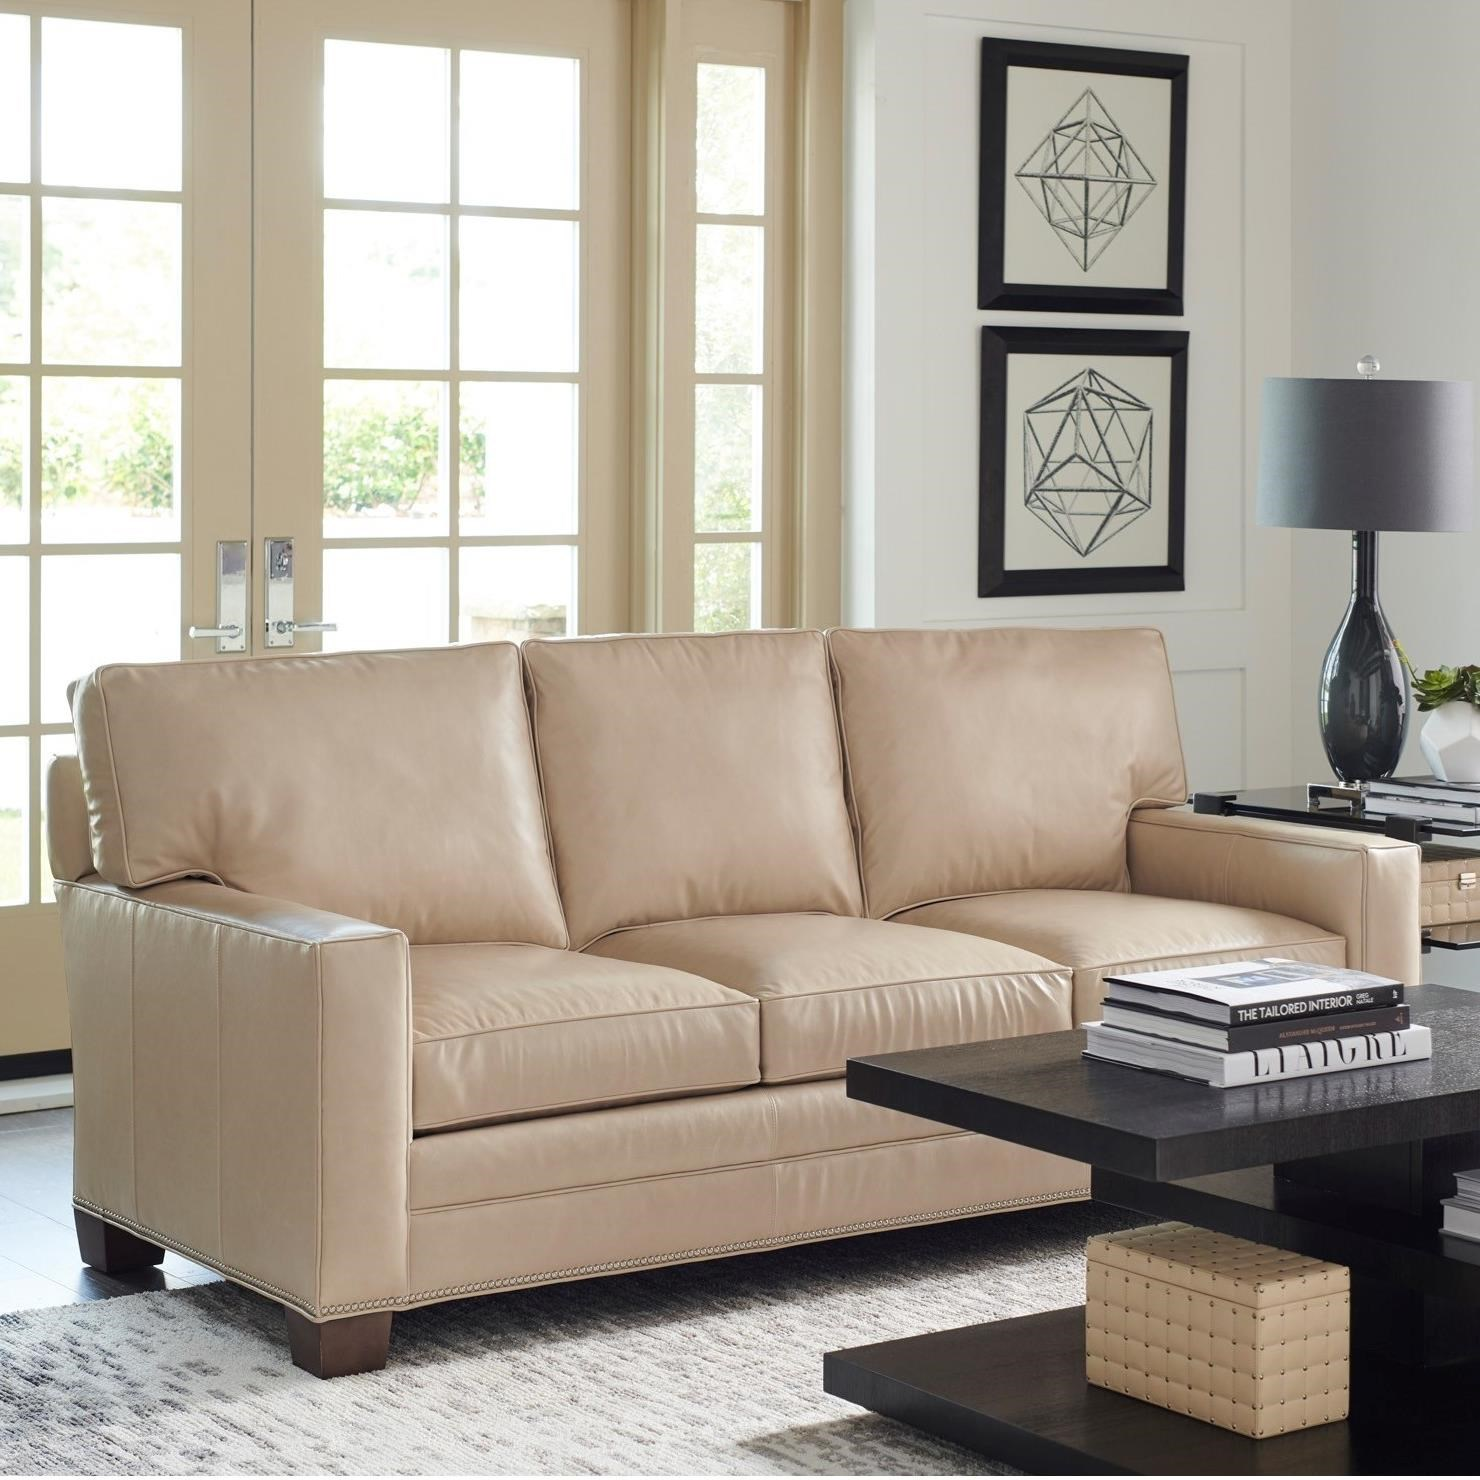 Couture Leather Brayden Customizable 3-Cushion Sofa by Lexington at Jacksonville Furniture Mart